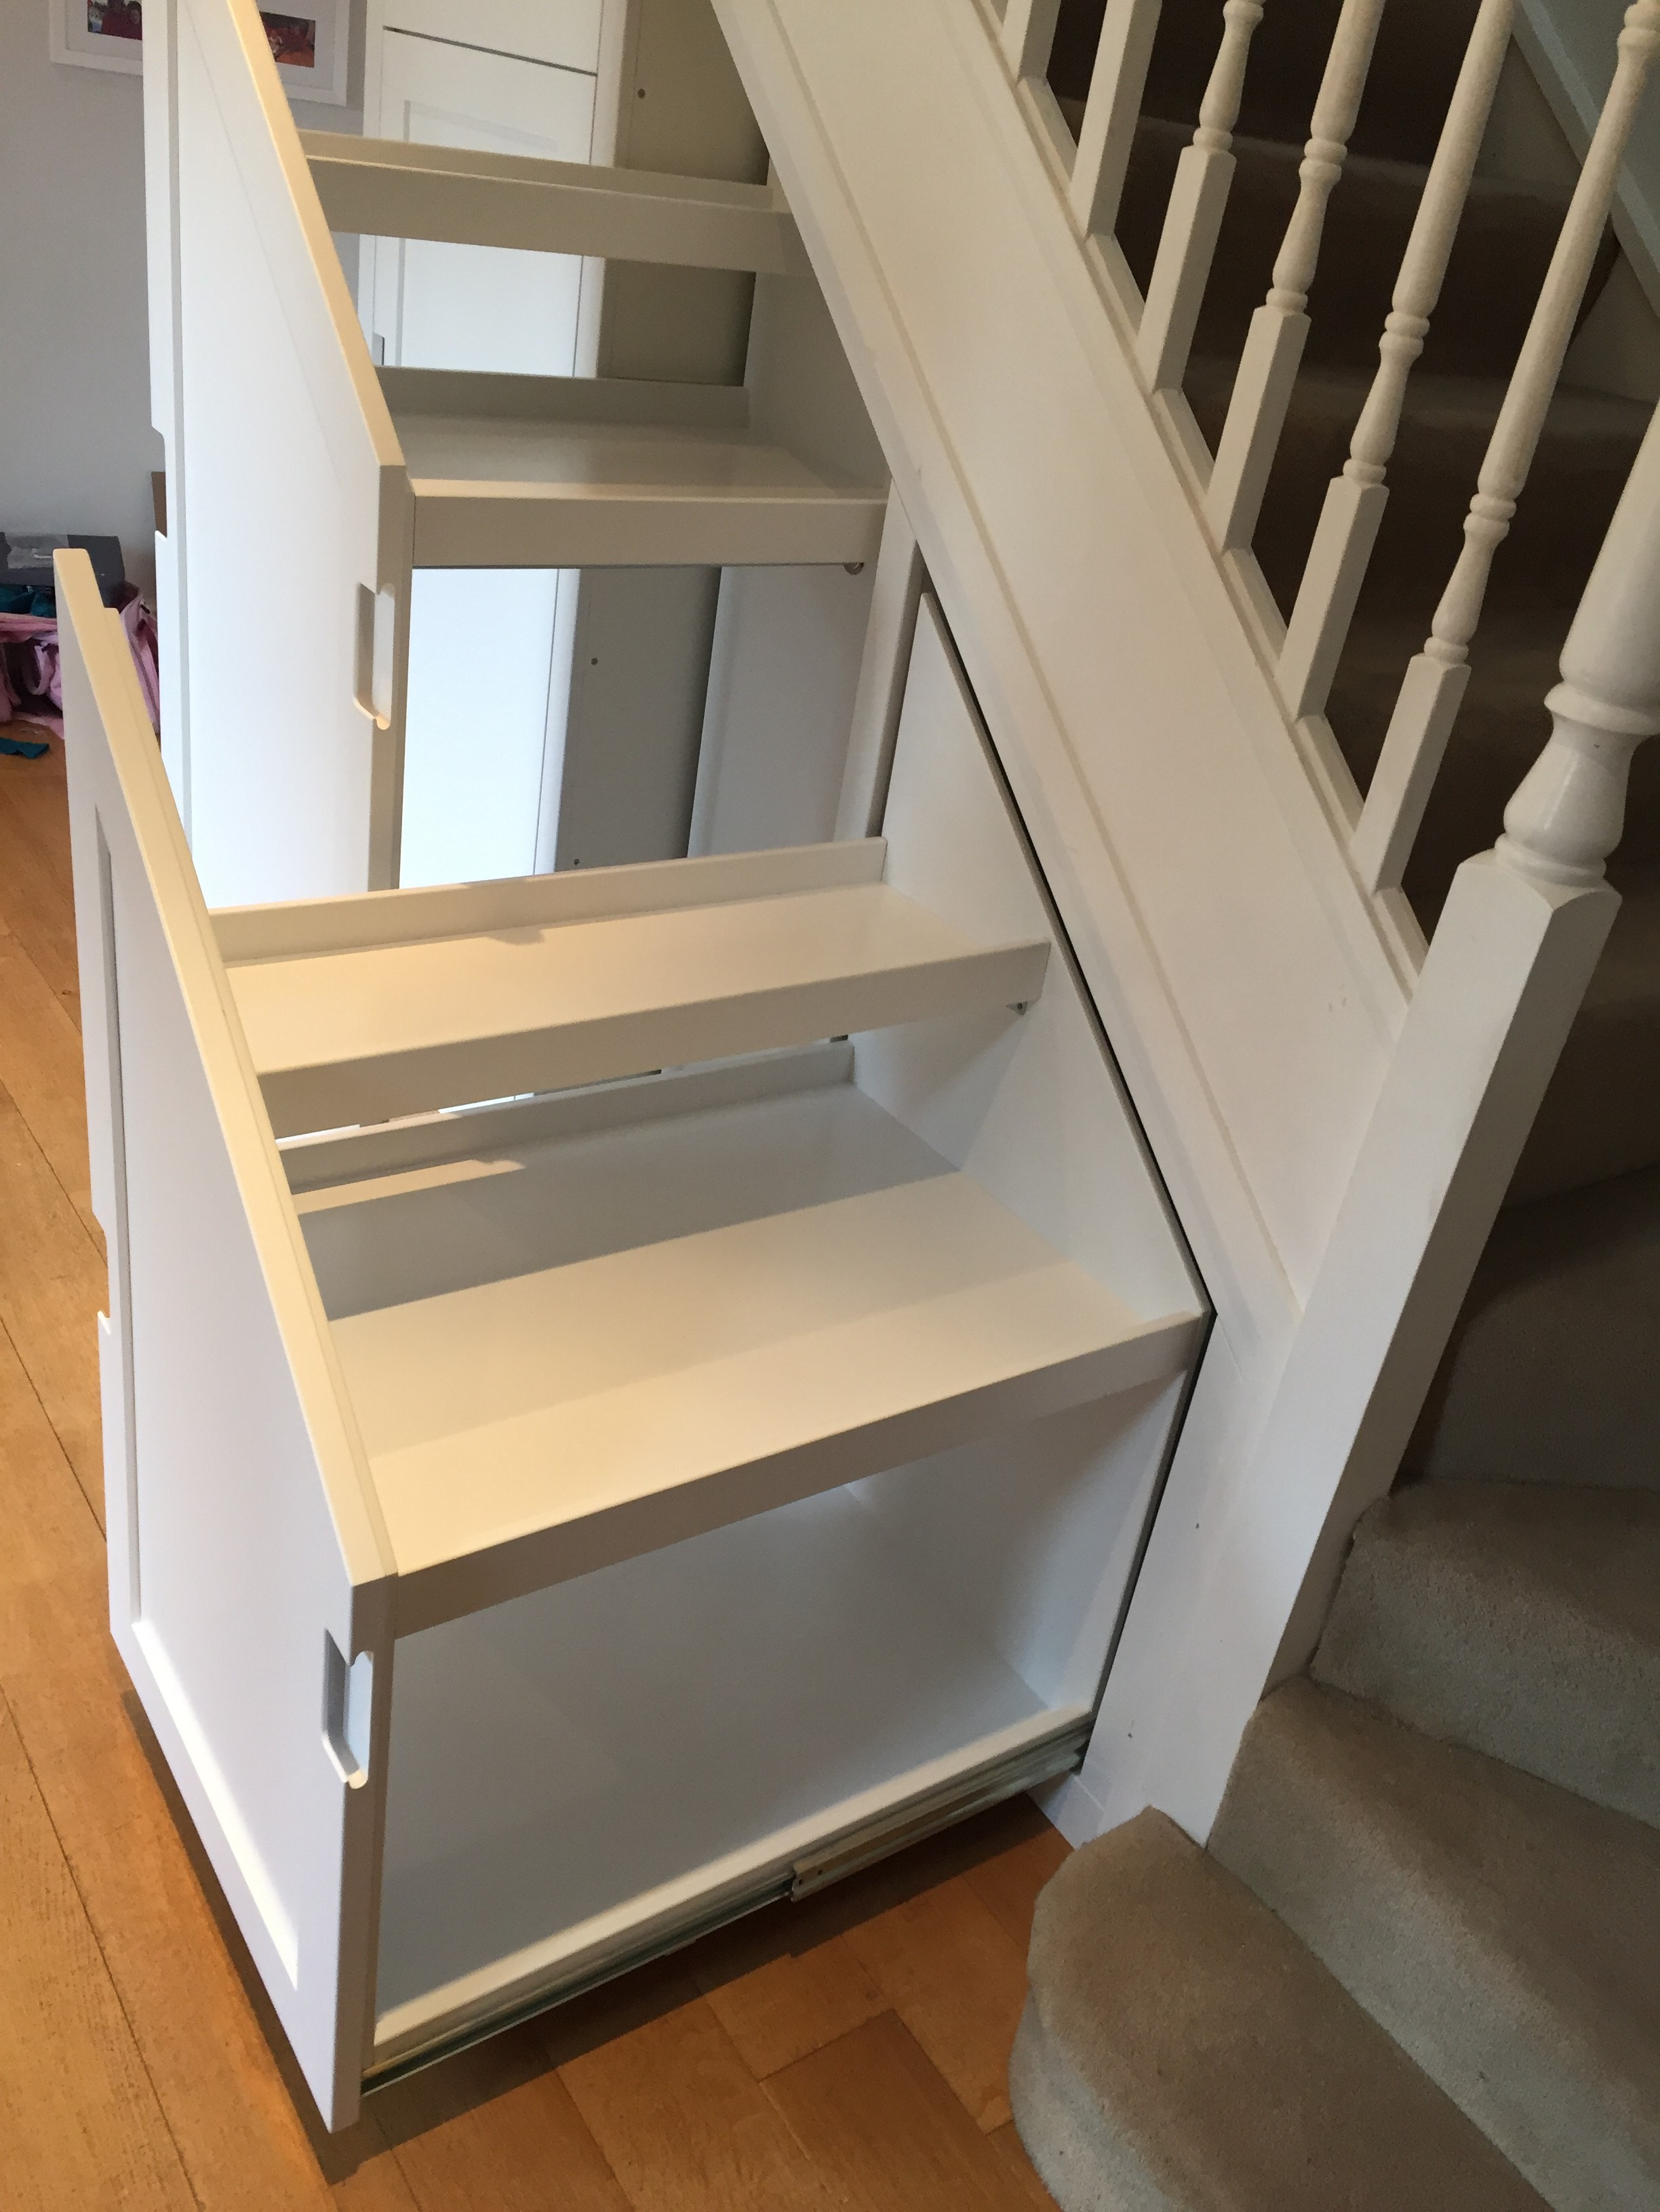 Bespoke Under Stairs Shelving: Concept-Carpentry Cambridge